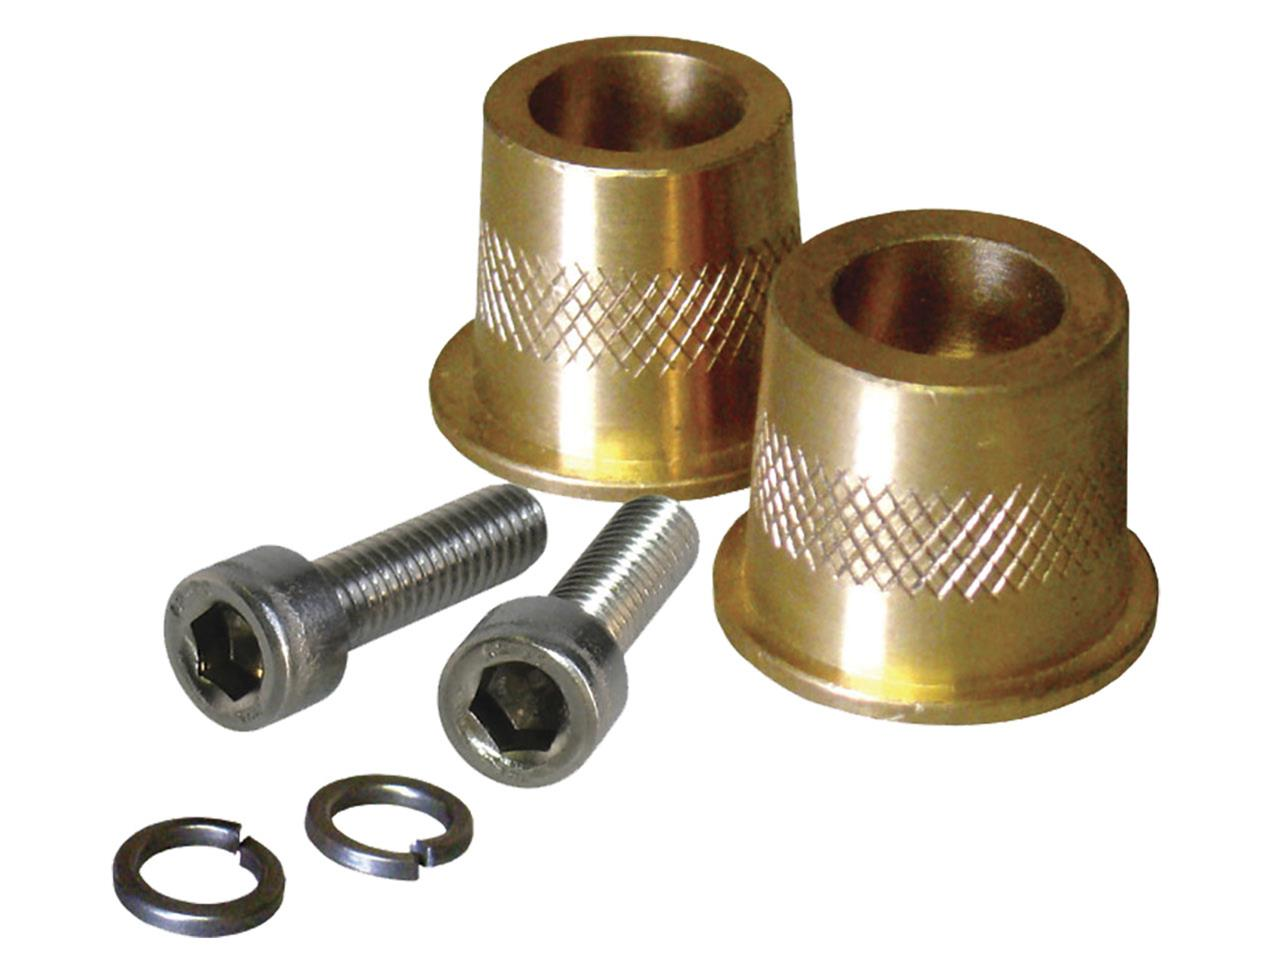 XS Power Brass Short Post Adapters M6 - (Pair)